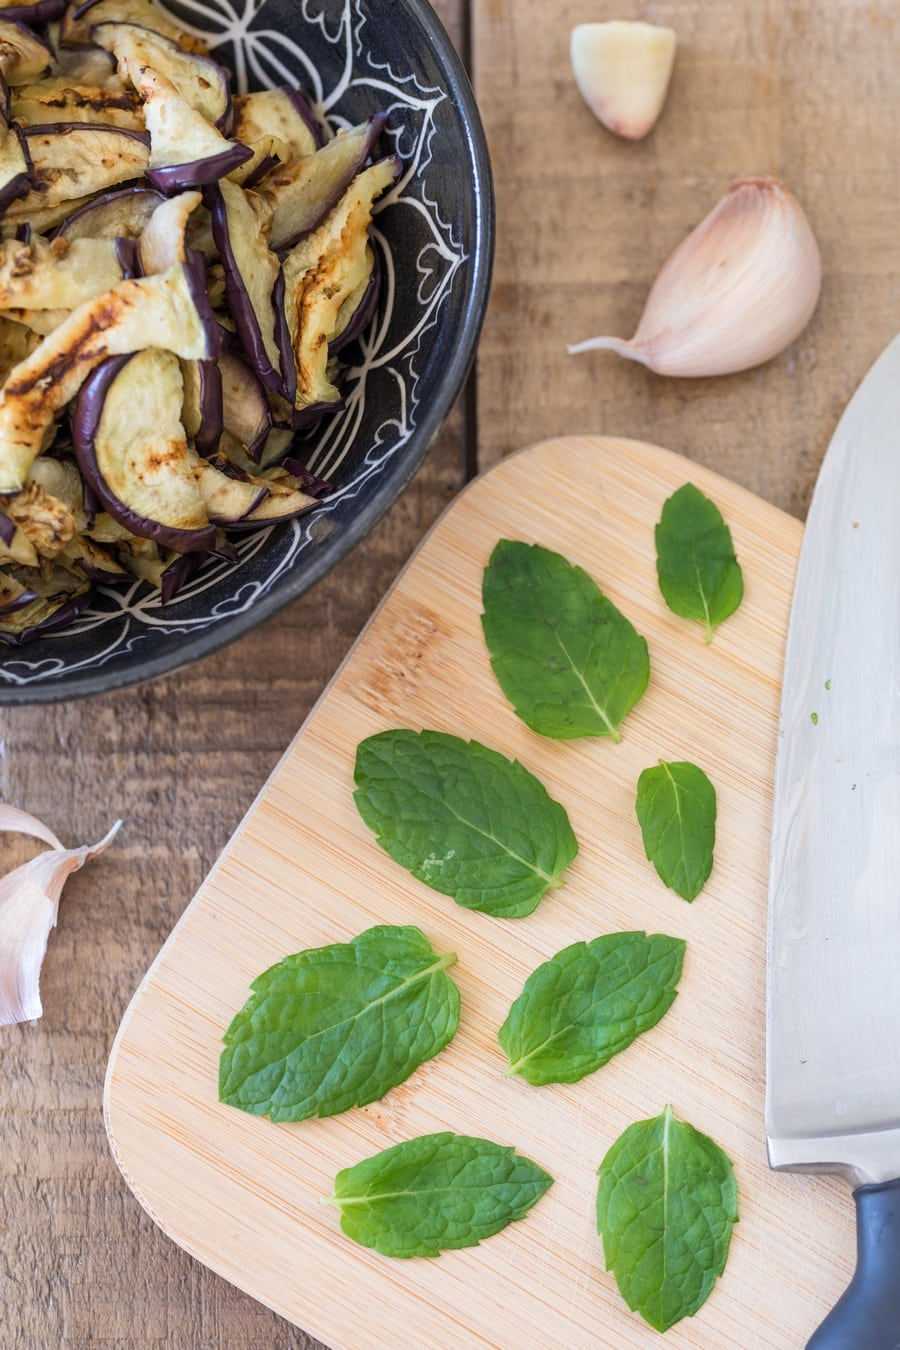 Fresh spearmint leaves on a cutting board, sliced grilled eggplant on the side.